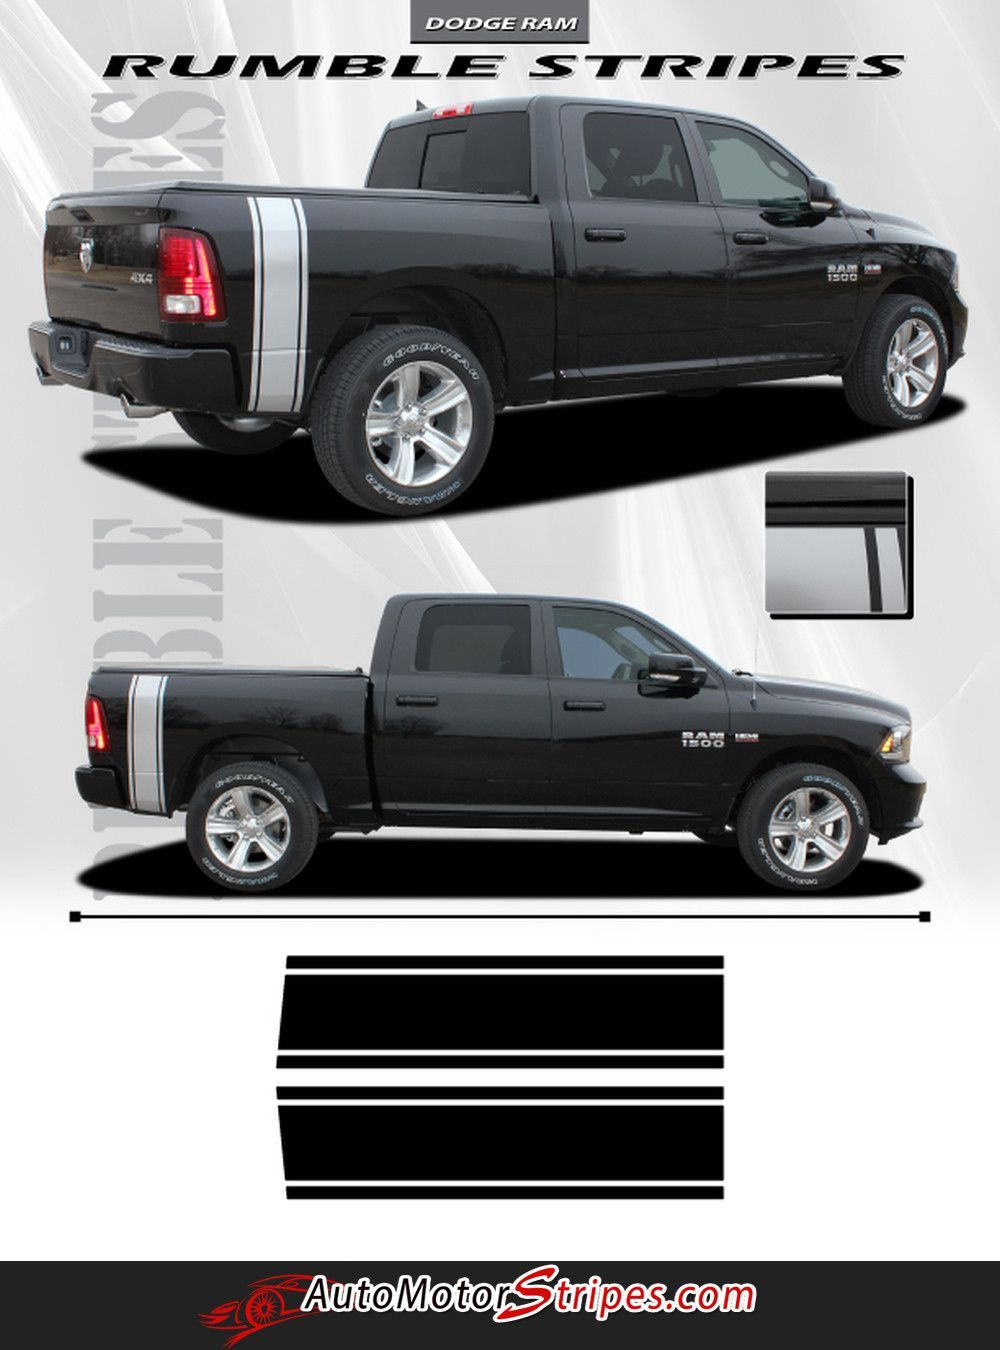 Vehicle specific style dodge ram truck rumble bee bed striping vinyl graphic stripe decals year fitment 2009 2010 2011 2012 2013 2014 2015 2016 contents